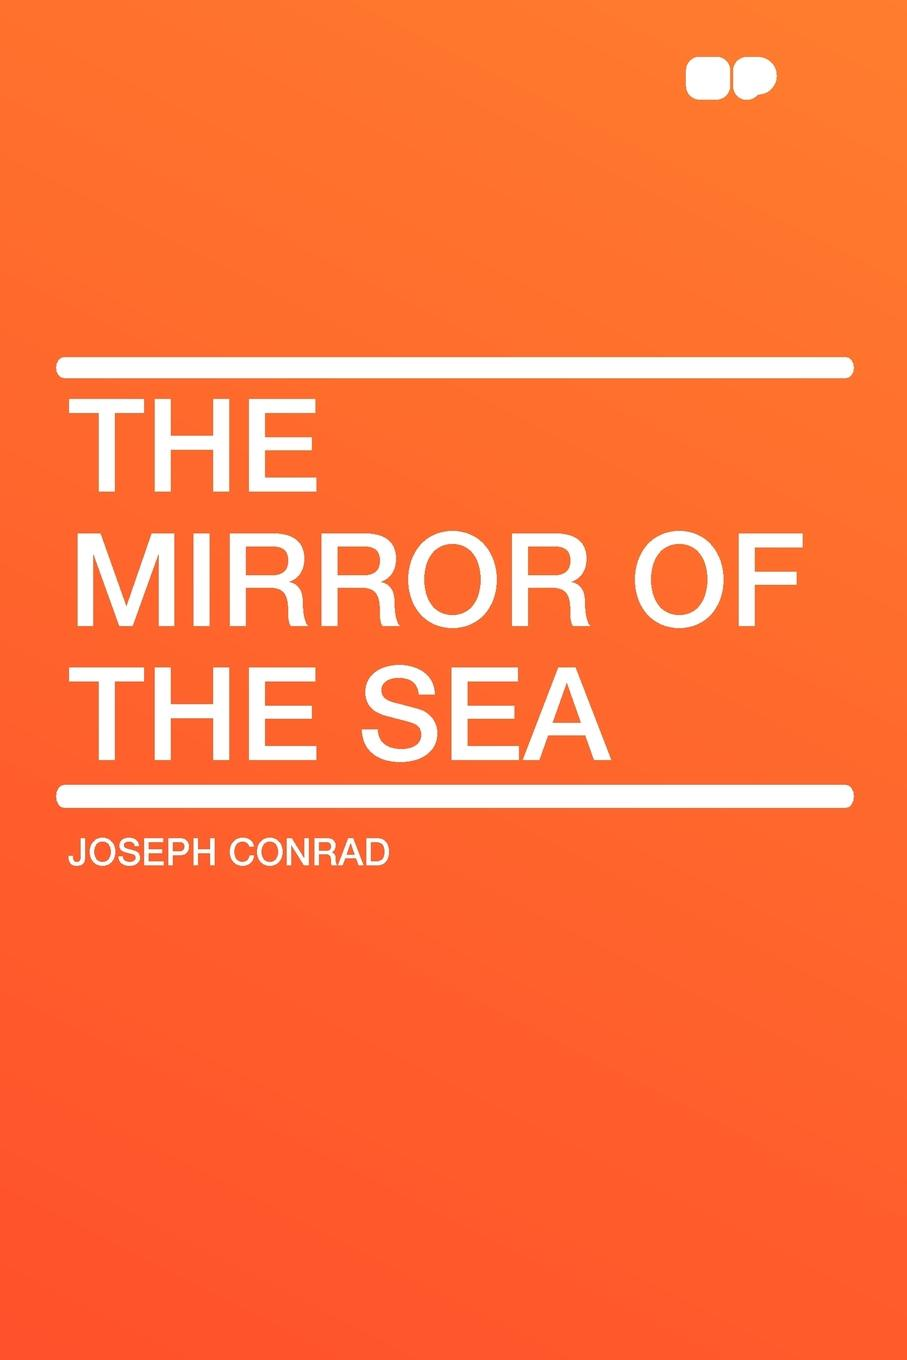 Joseph Conrad The Mirror of the Sea the diversity of iceland two color mirror dichroic mirror gem identification